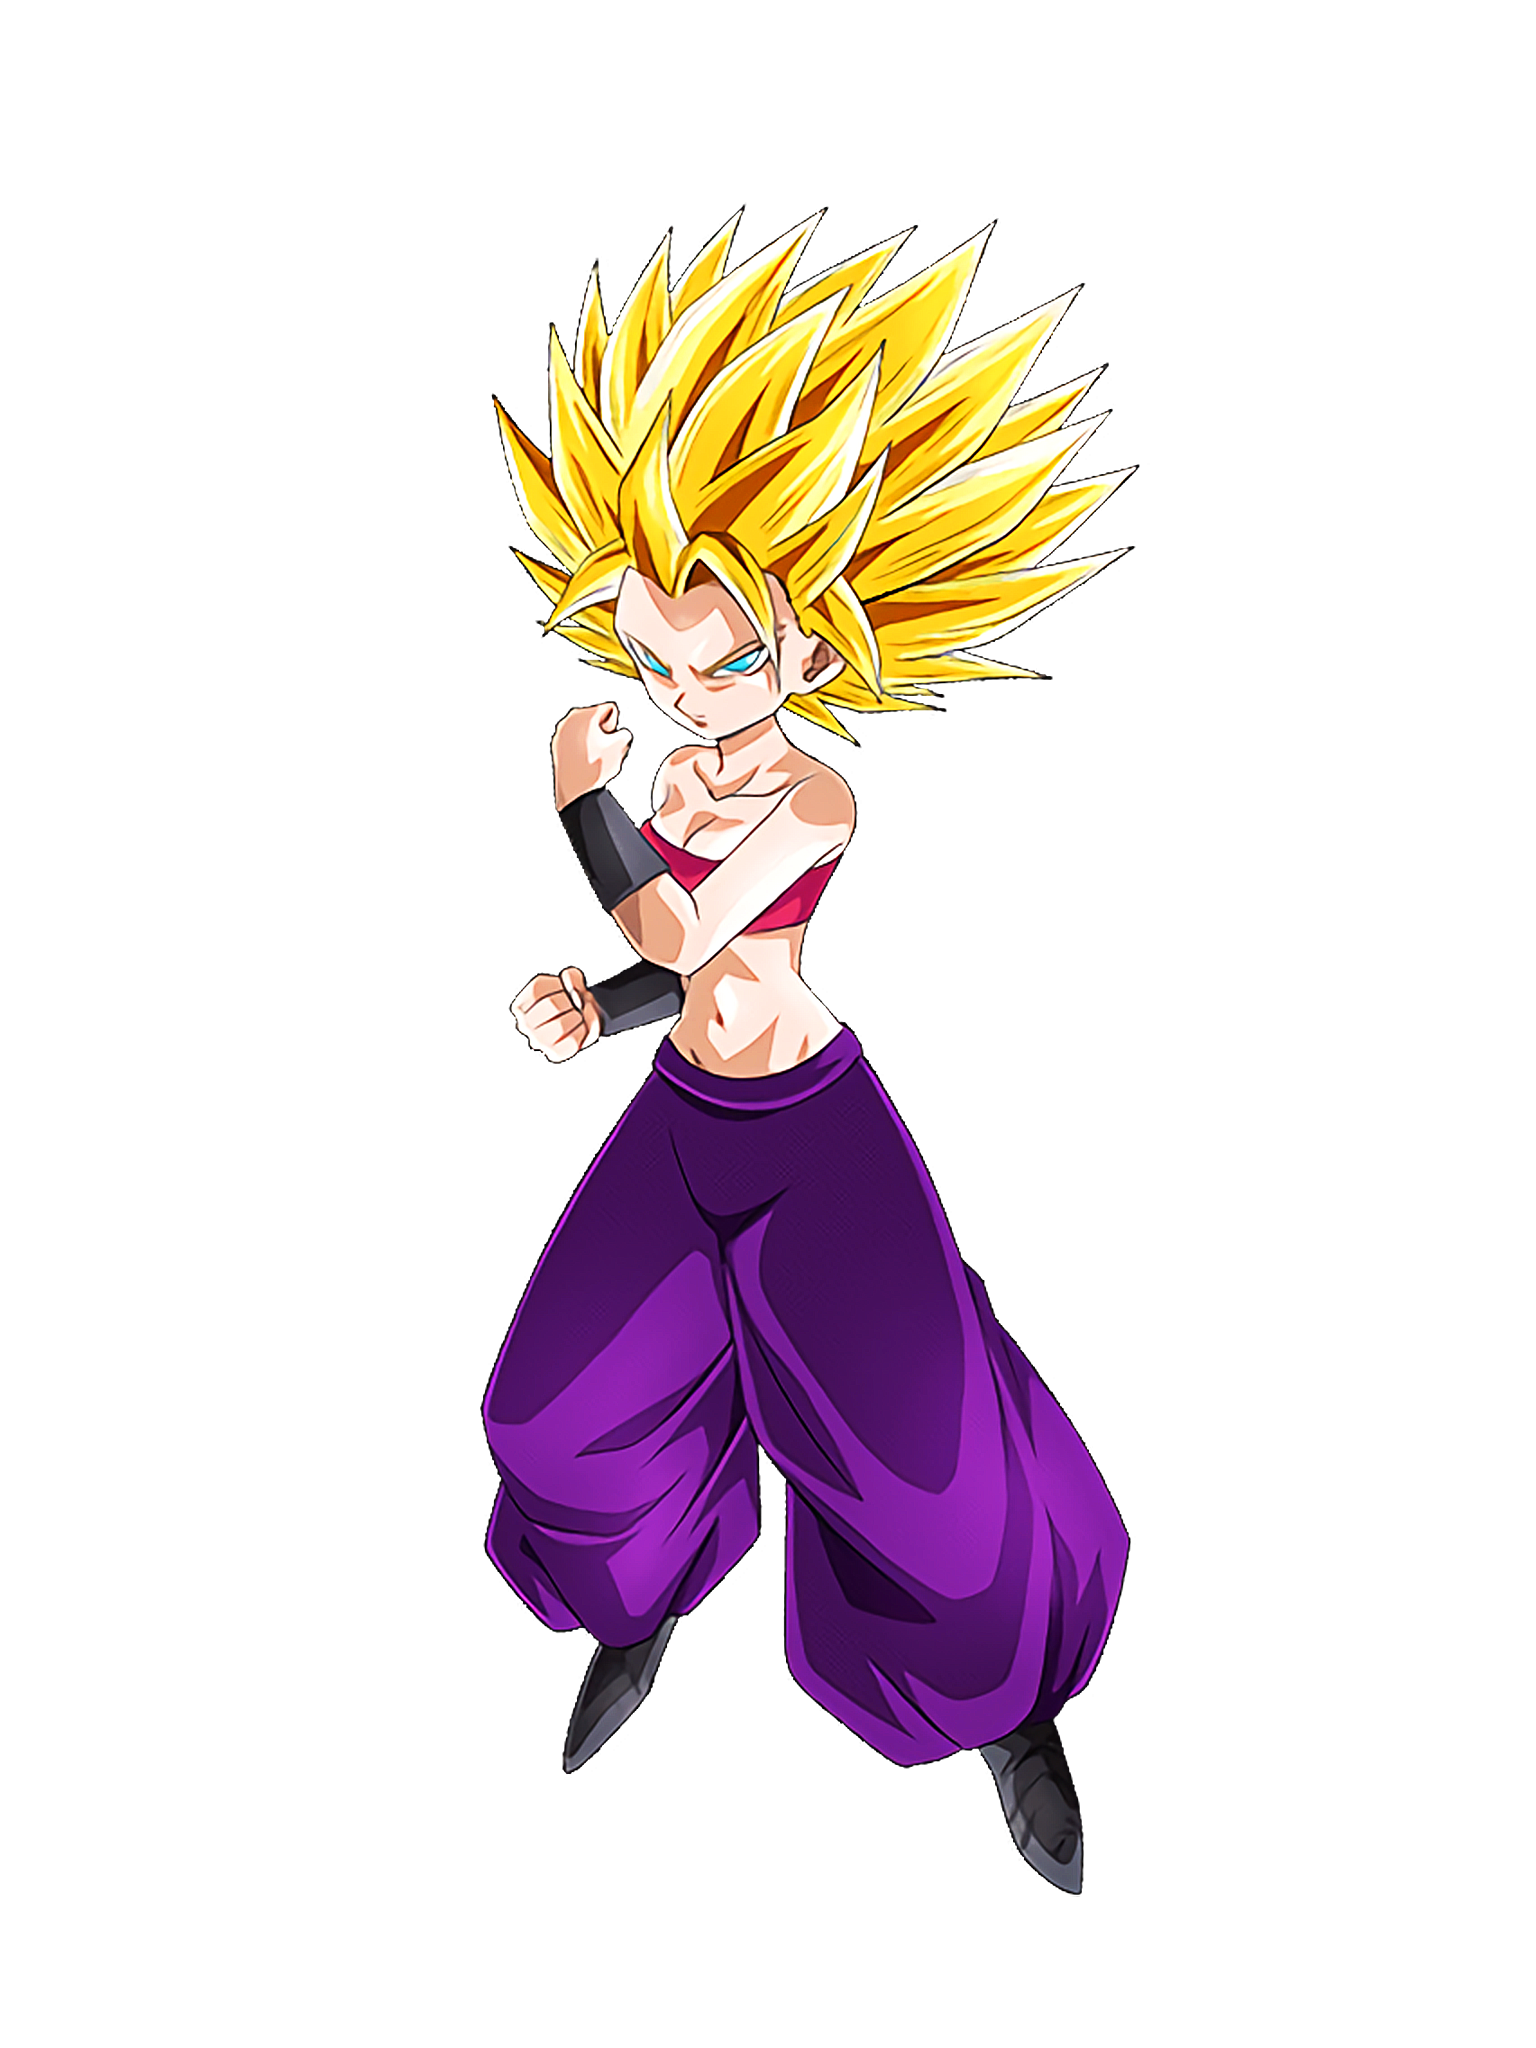 SSJ2 Caulifla1 DBS Render (Dragon Ball Z Dokkan Battle).png